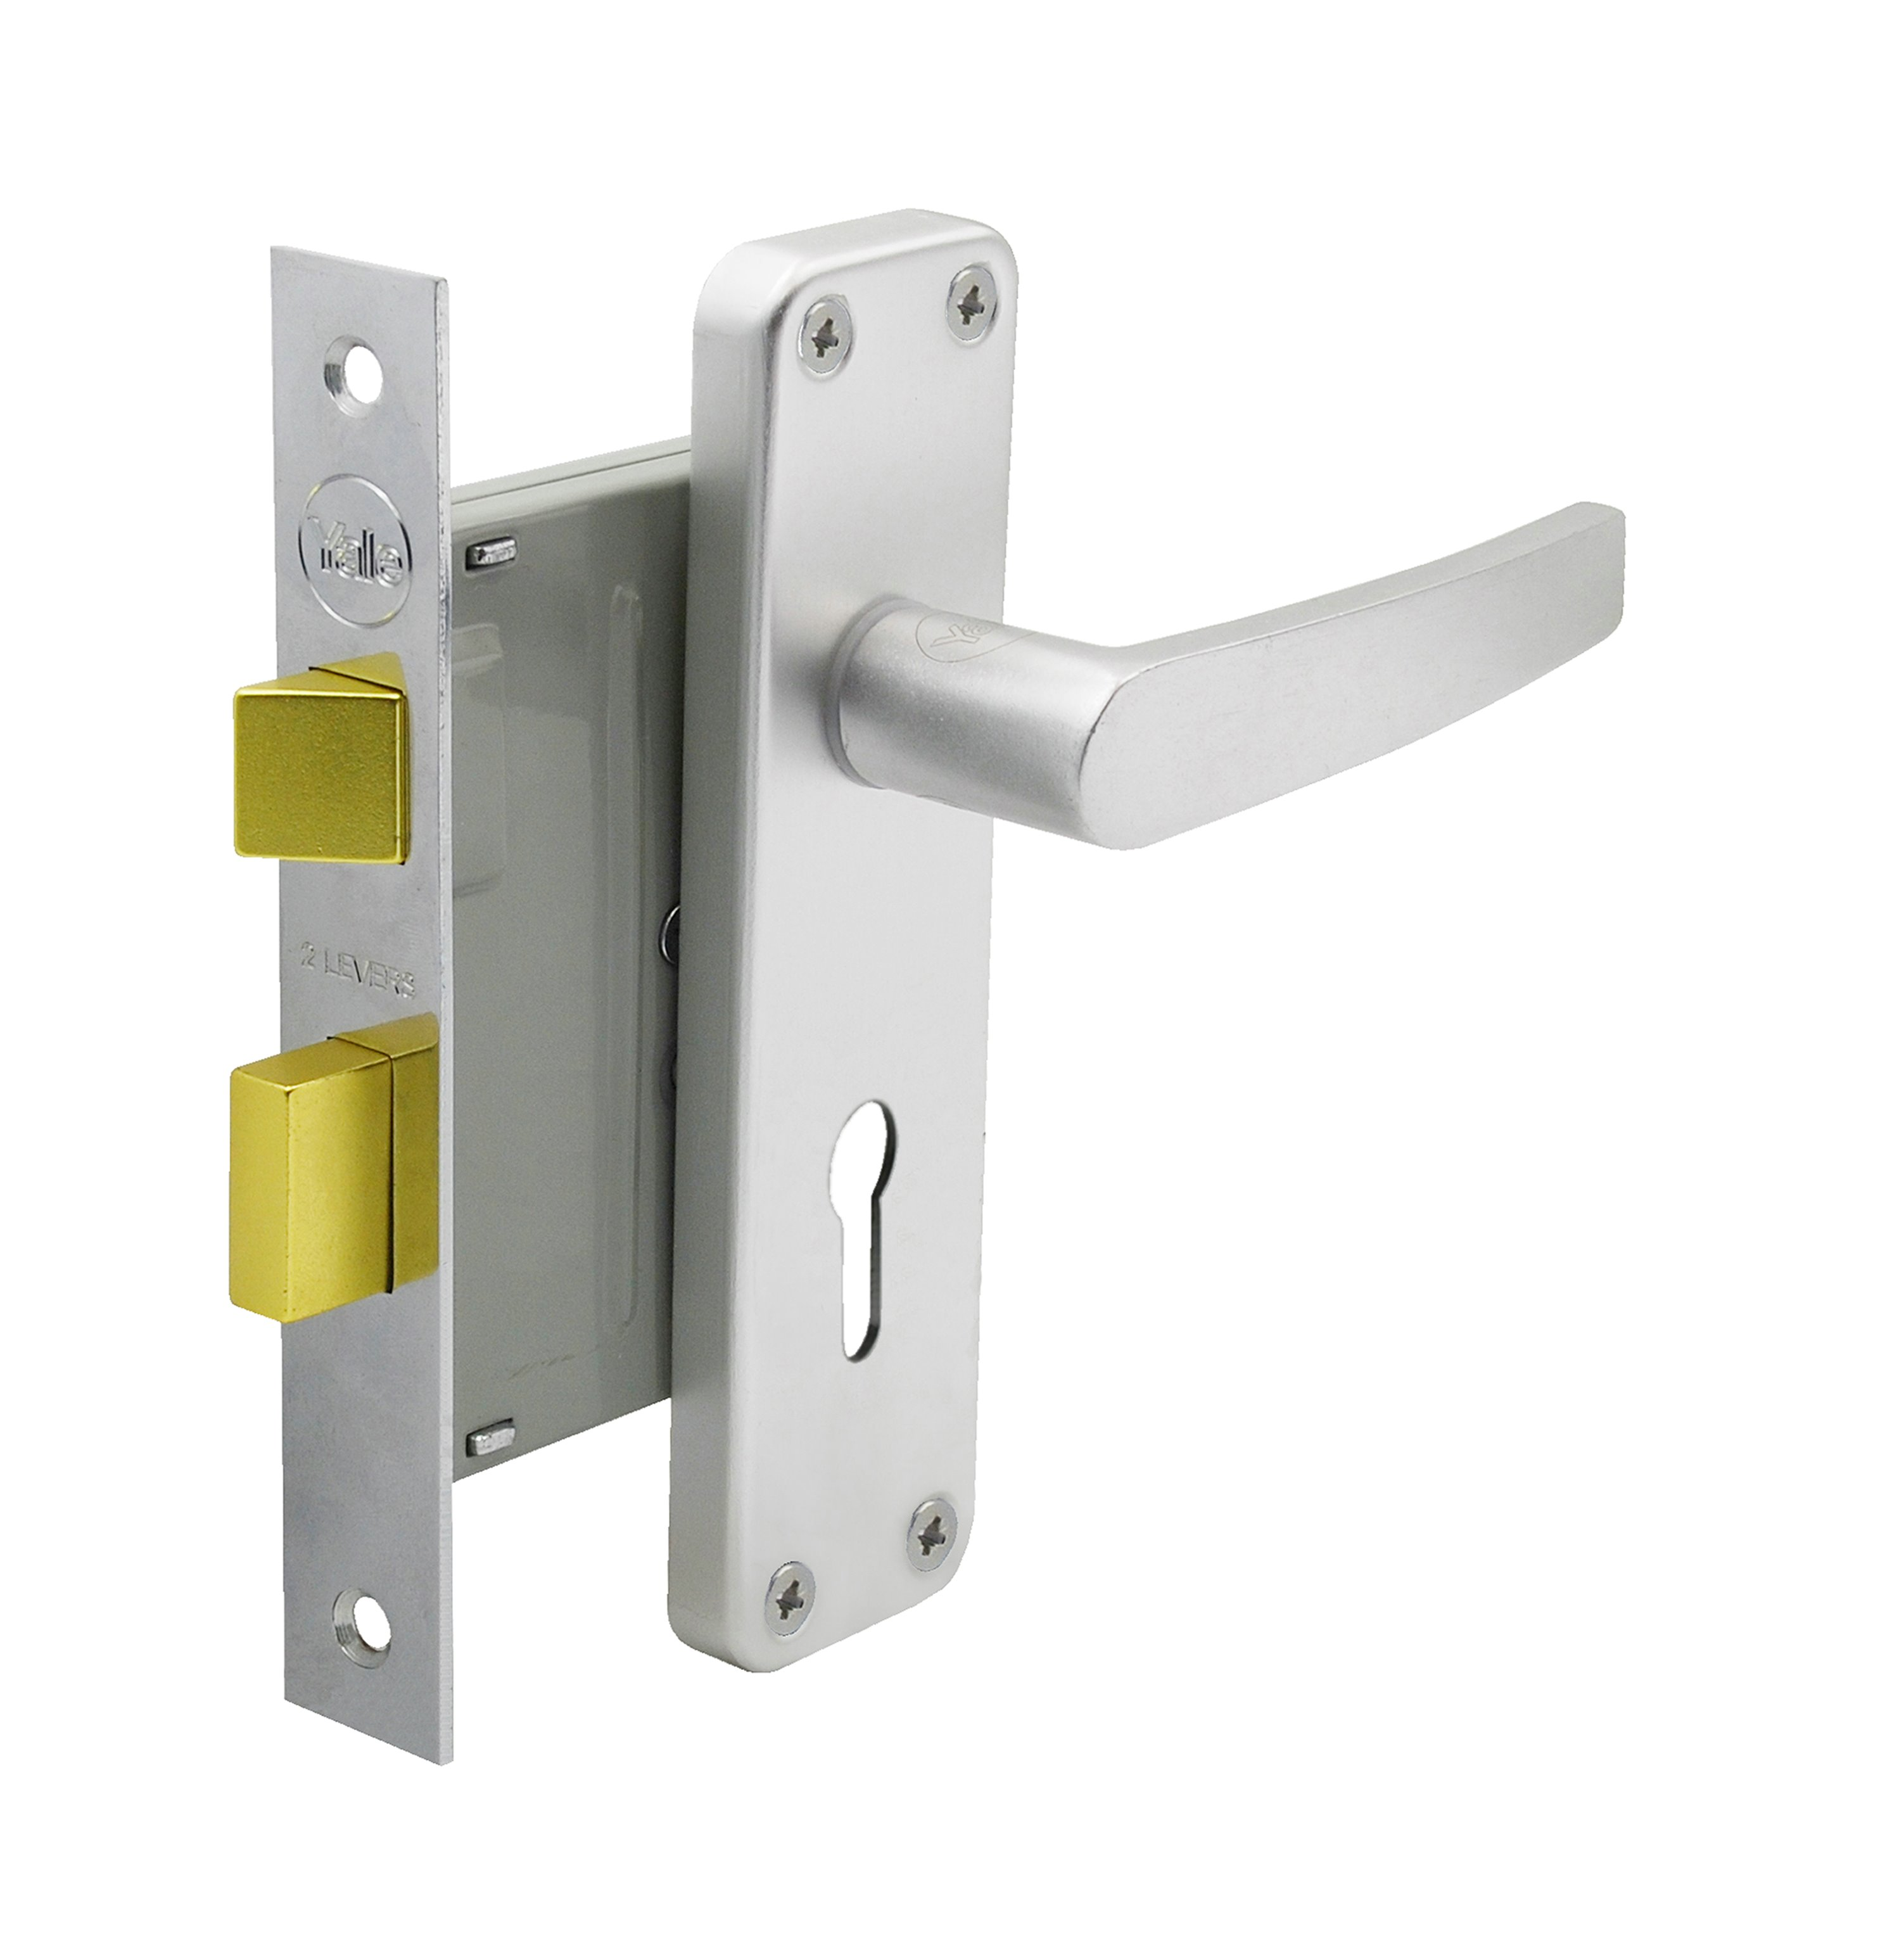 2 Lever lockset